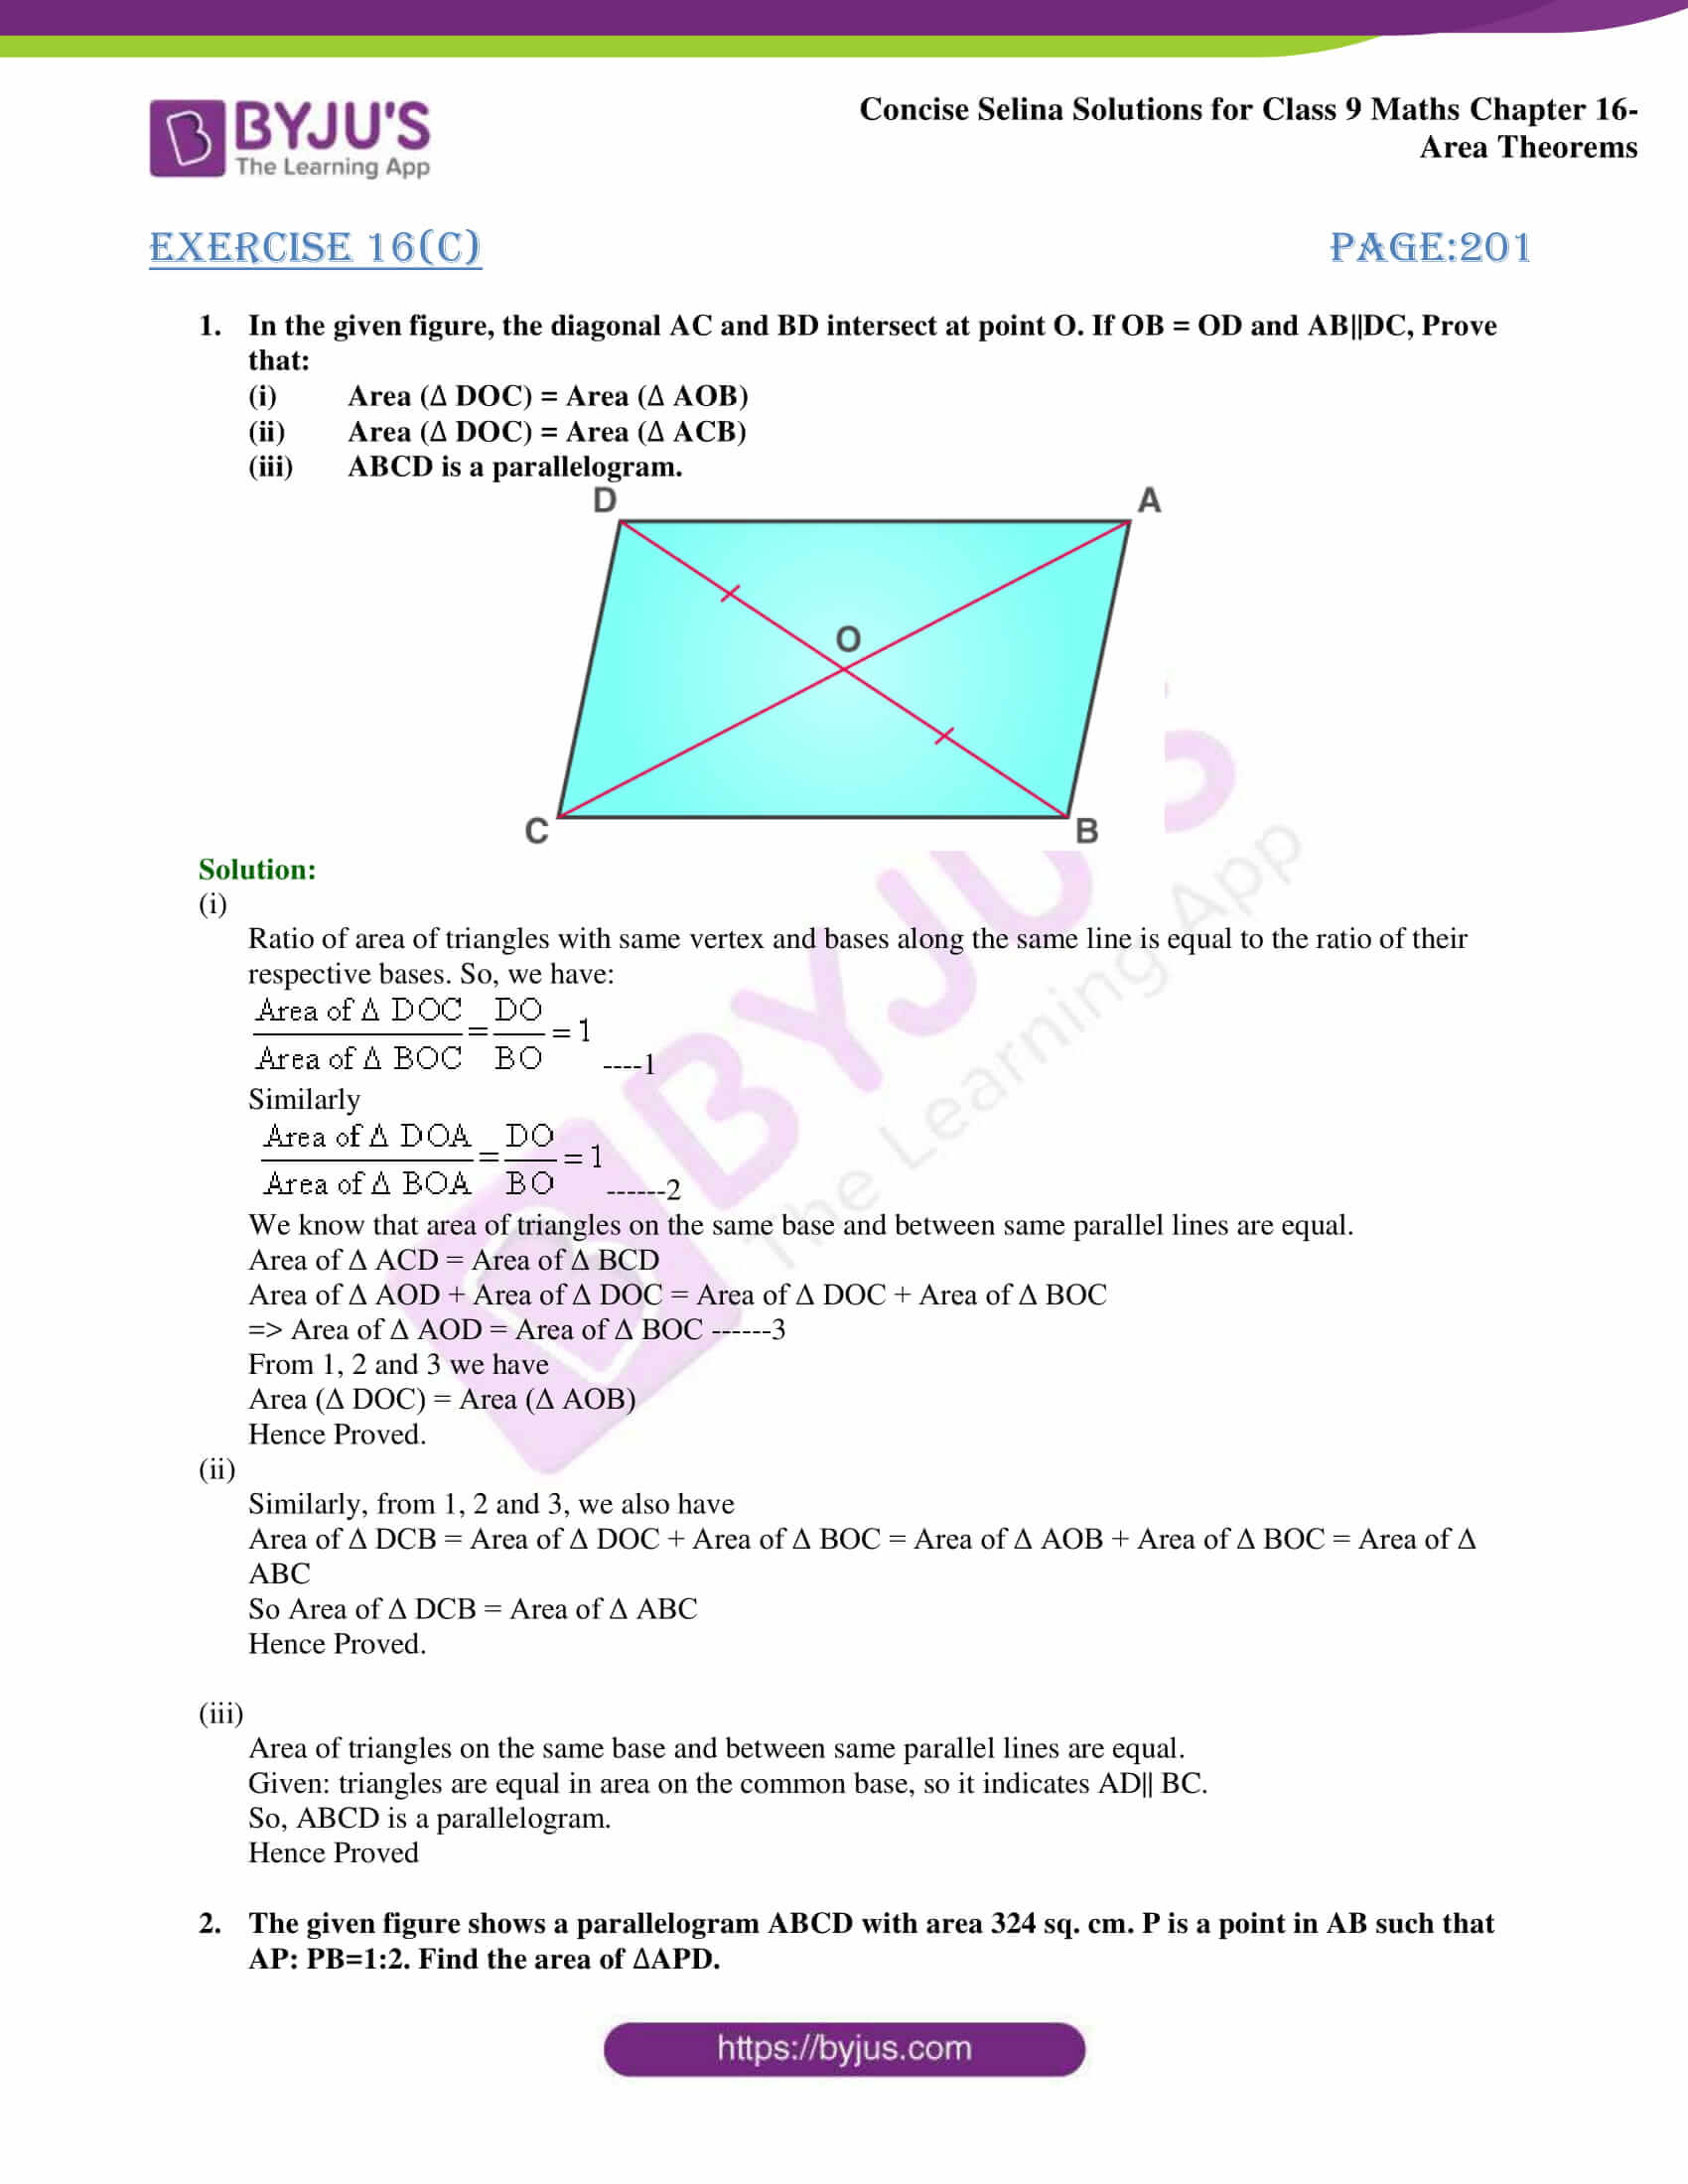 Concise Selina Solutions Class 9 Maths Chapter 16 Area Theorems part 23